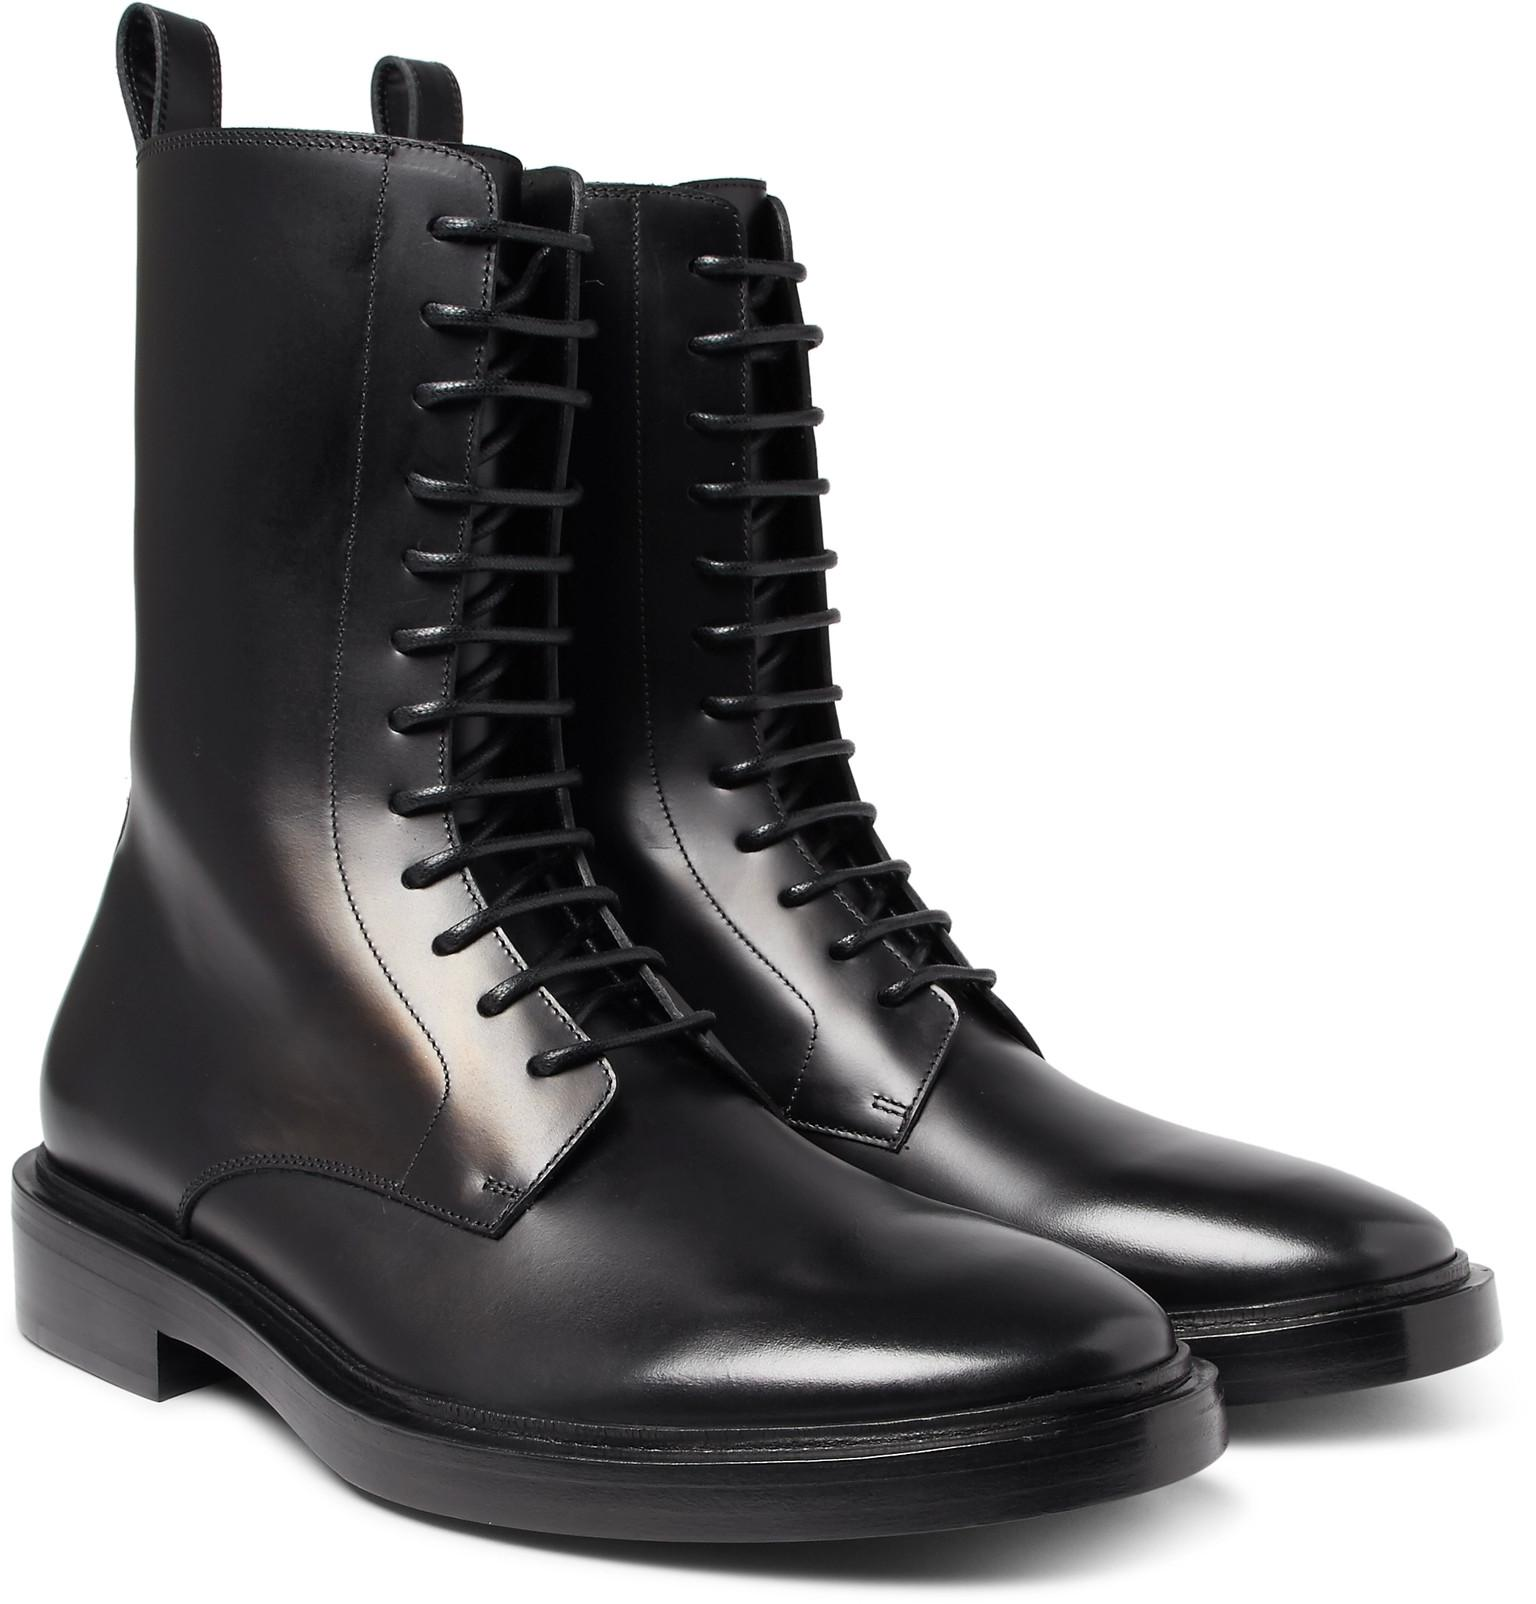 Balenciaga Leather Combat Boots in